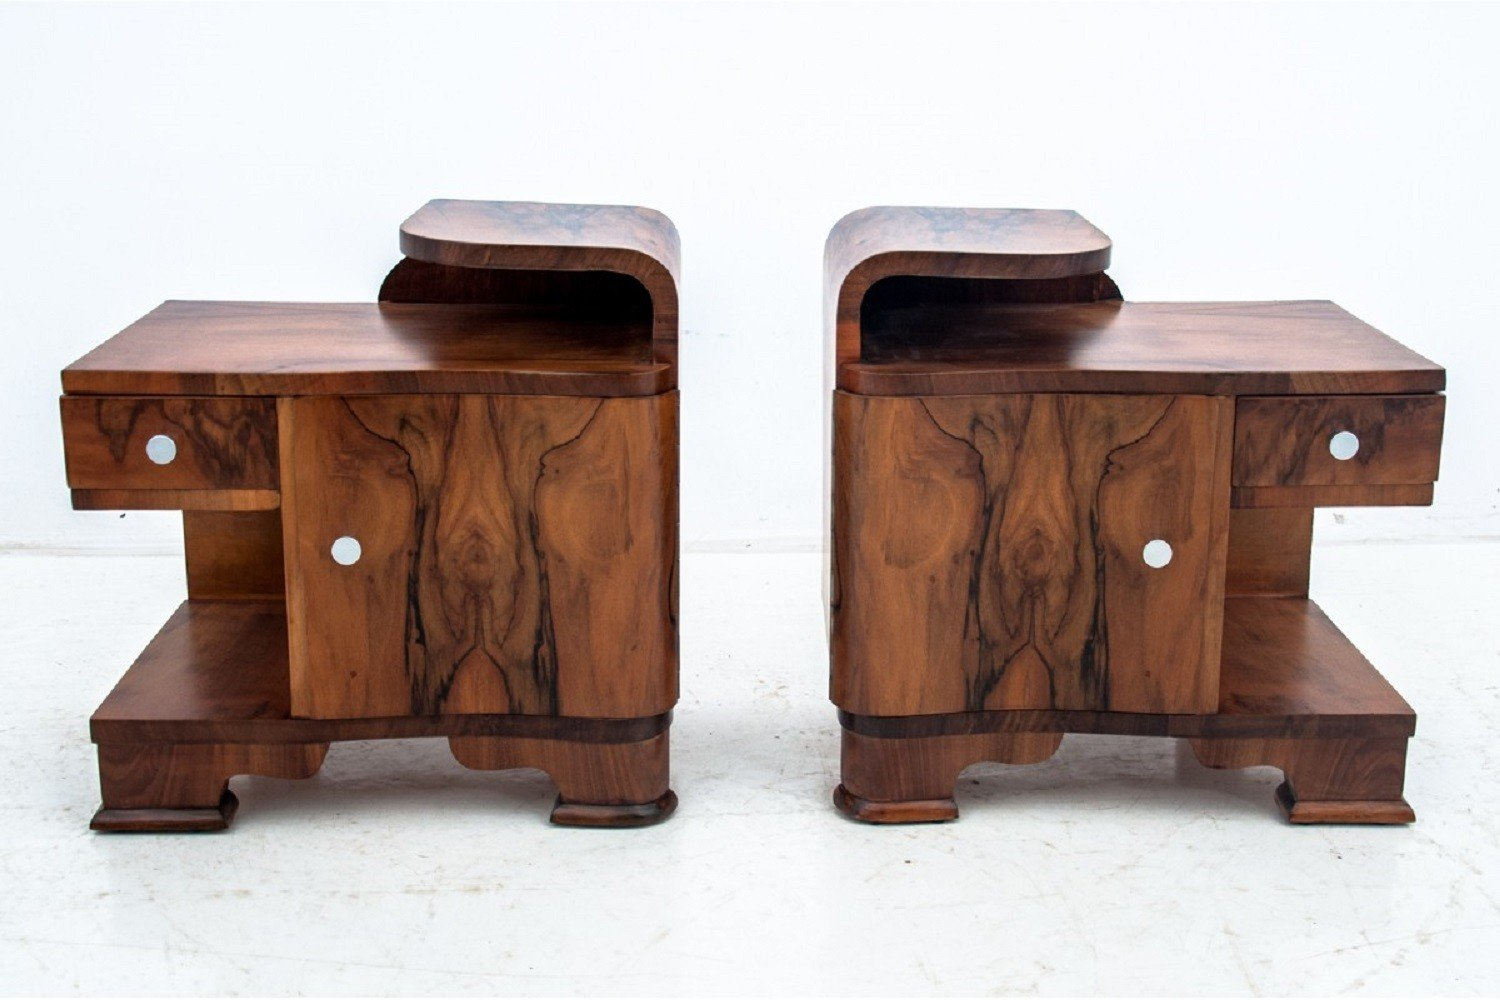 Pair of Bedside tables, Poland, 1960s - 500614 - photo